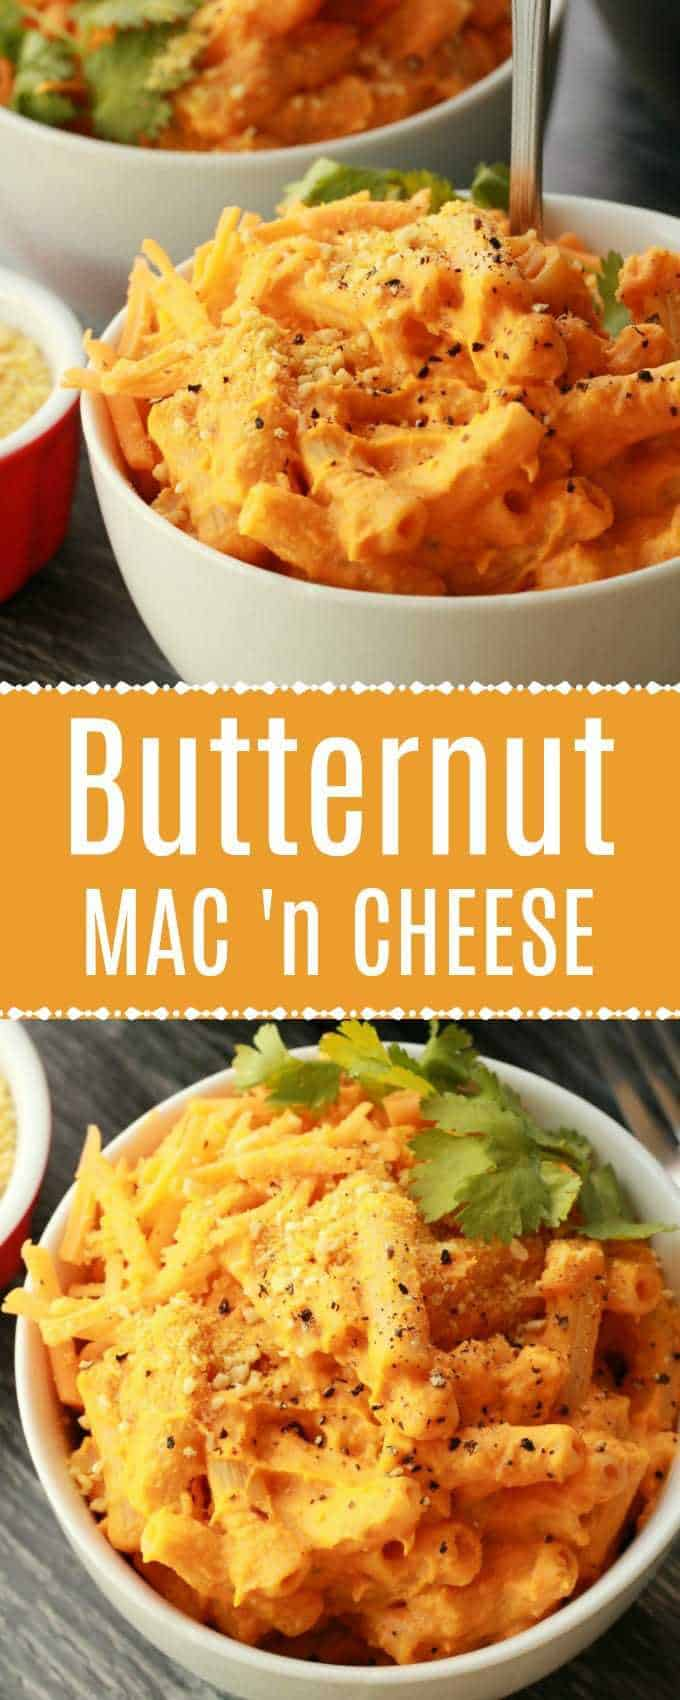 Fabulously cheesy vegan butternut squash mac and cheese. Perfect comfort food, this saucy and deliciously flavored dish is super easy and so satisfying. #vegan #veganrecipes | lovingitvegan.com